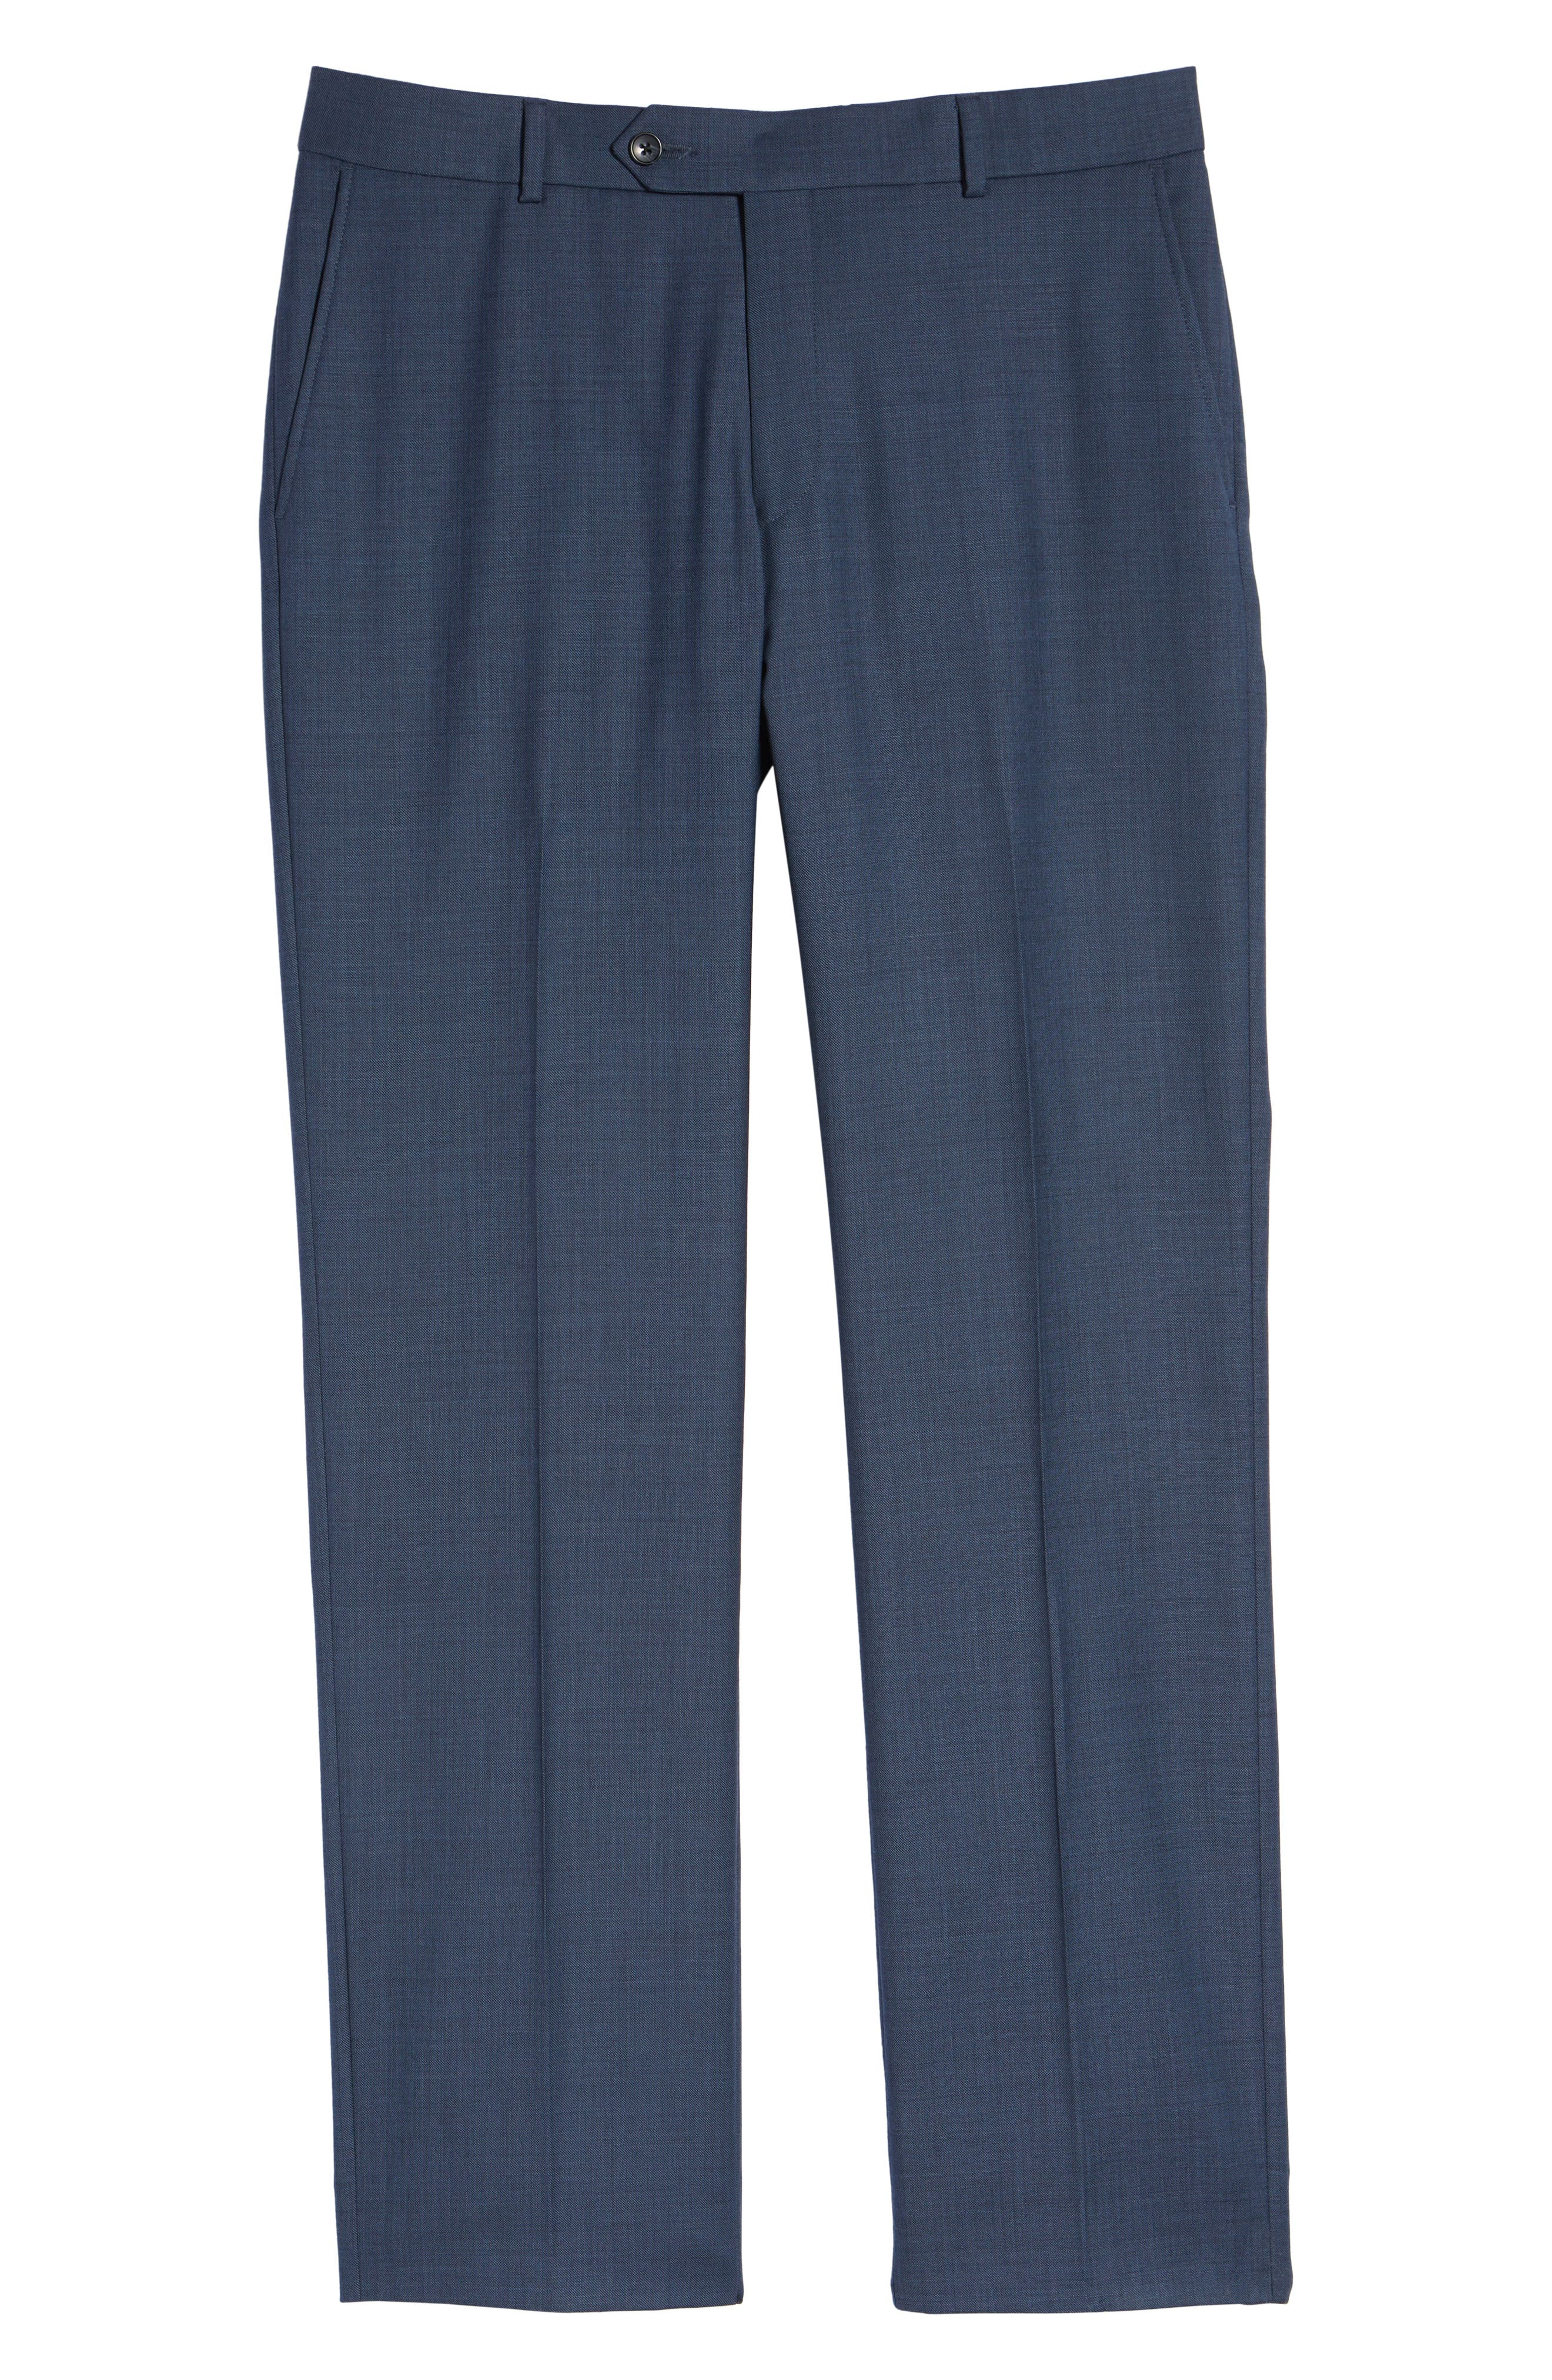 Flat Front Sharkskin Wool Trousers,                             Alternate thumbnail 6, color,                             NEW NAVY